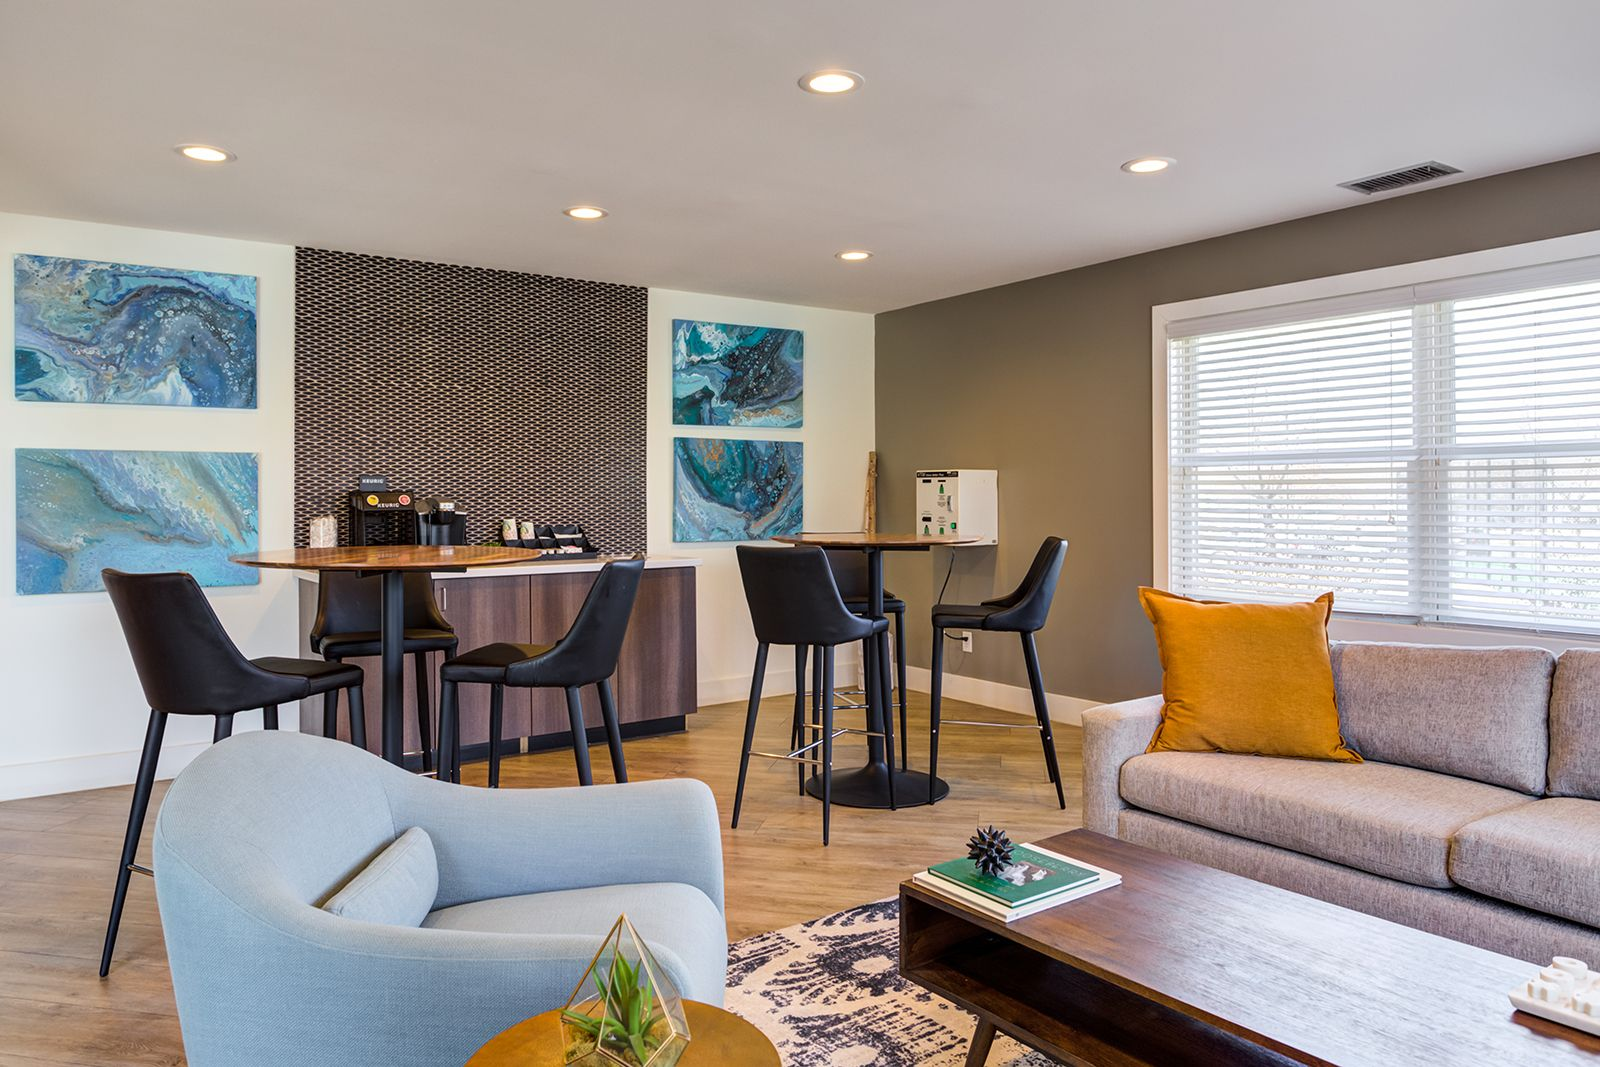 Grab A Pick Me Up Cup Of Coffee At Our Coffee Station In Our Clubhouse Amenities Thefitzgerald Apartments Mn Home Bedroom Floor Plans Apartments For Rent